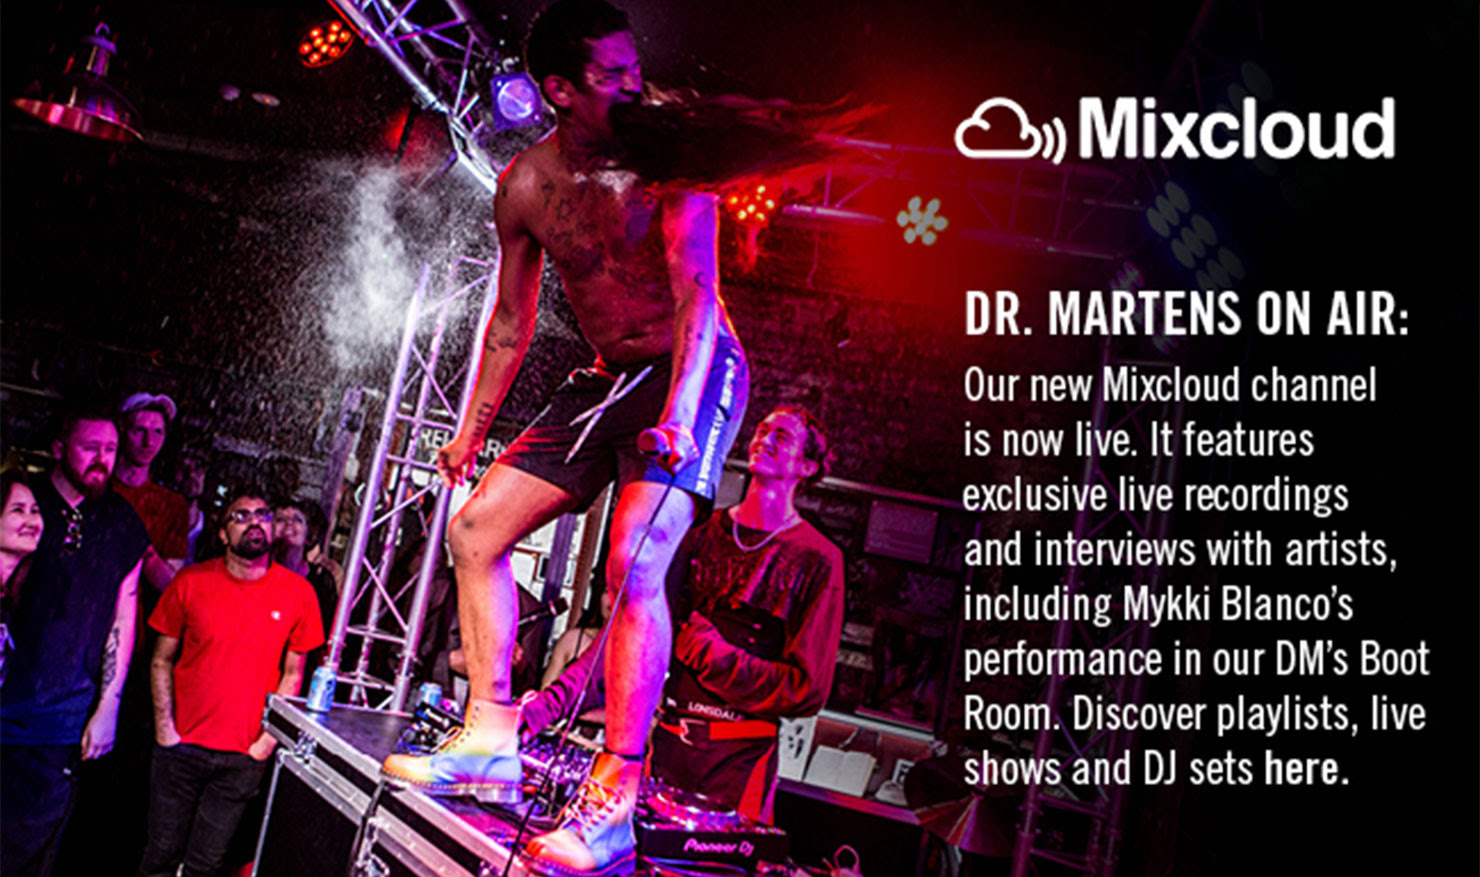 Dr. MARTENS ON AIR - Our new Mixcloud channel is now live. It features exclusive live recordings and interviews with artists, including Mykki Blanco's performance in our DM's Boot Room. Discover playlists, live shows and DJ sets here.